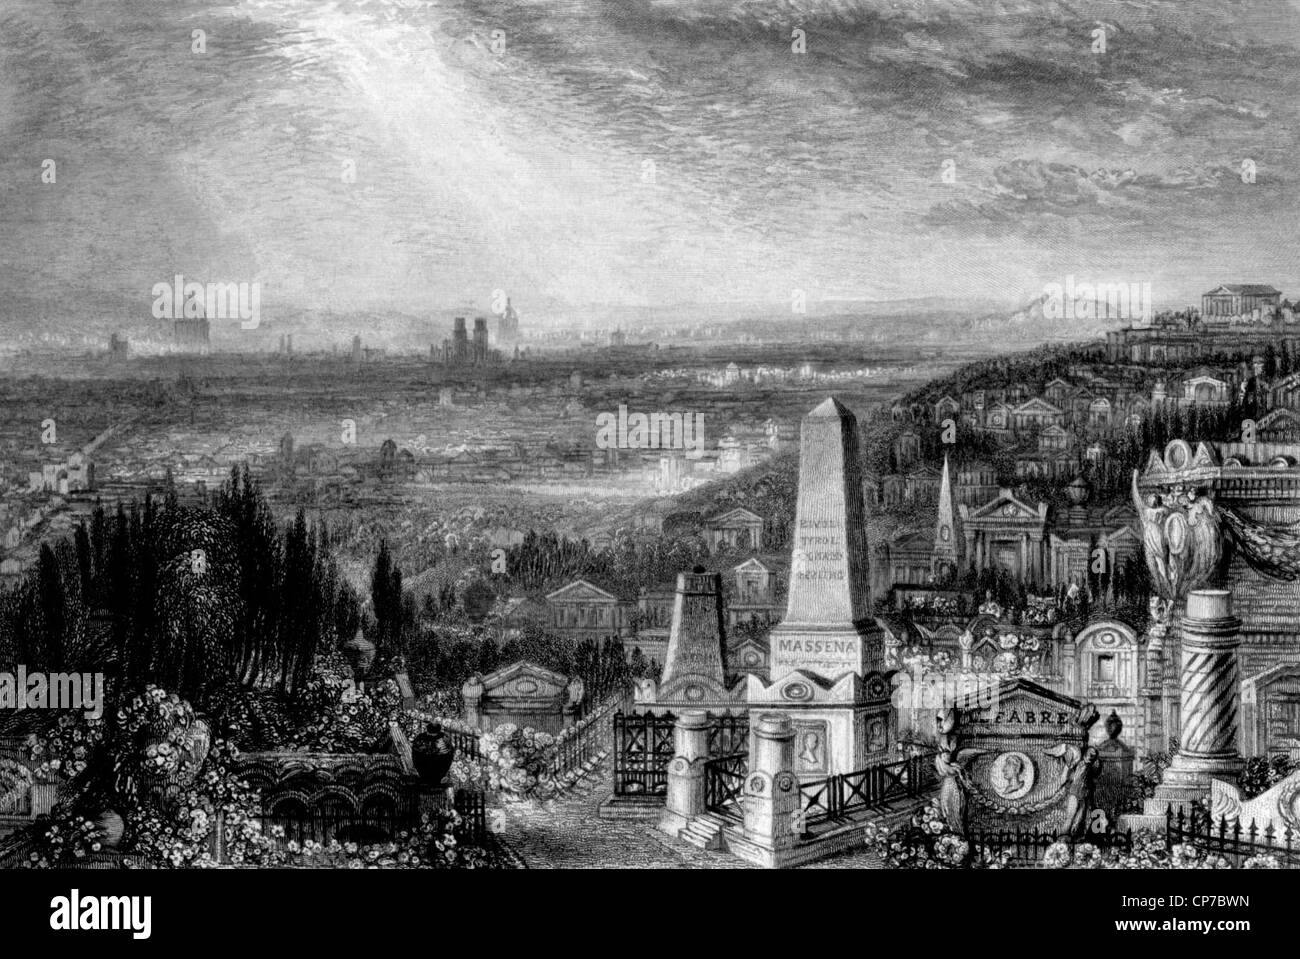 Engraving of Pere Lachaise cemetery in Paris, France. - Stock Image